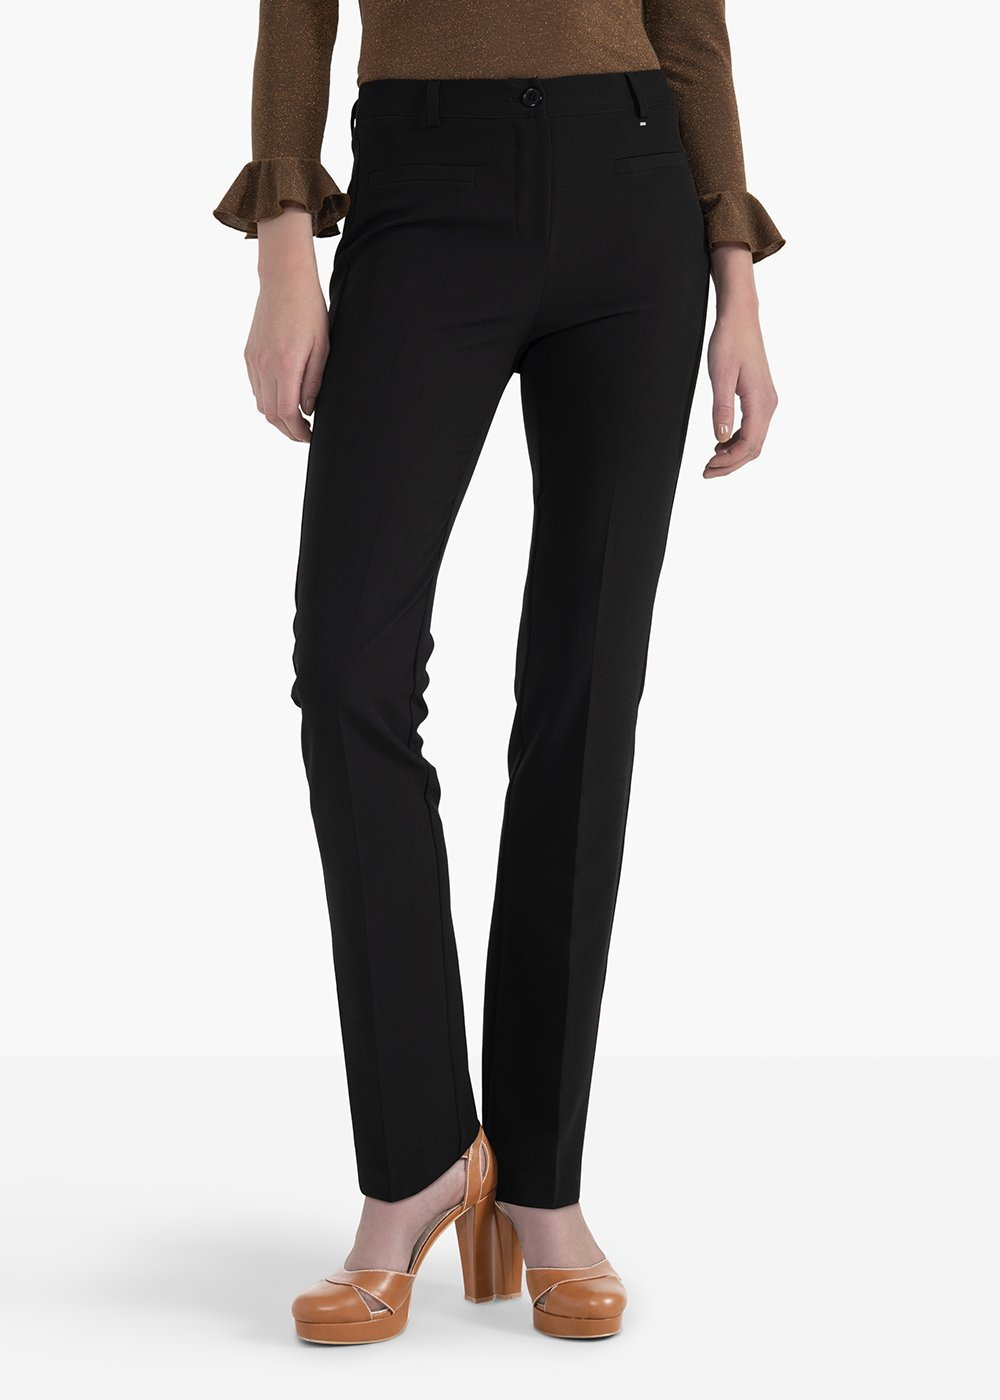 Miranda pants with double thread on the front and back - Black - Woman